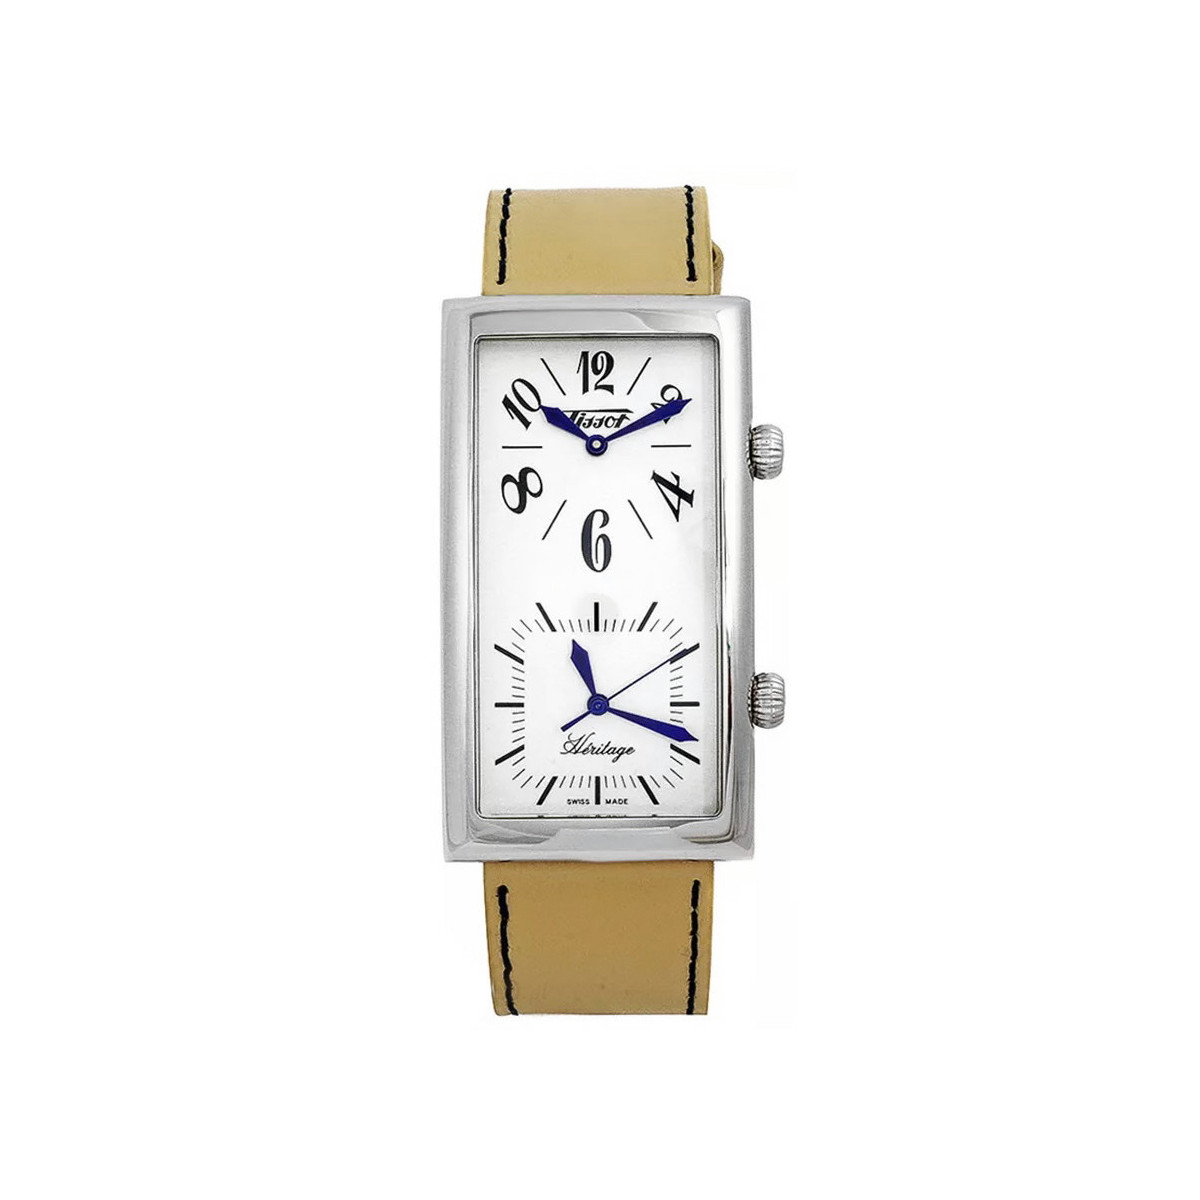 TISSOT CLASSIC PRINCEII WATCH